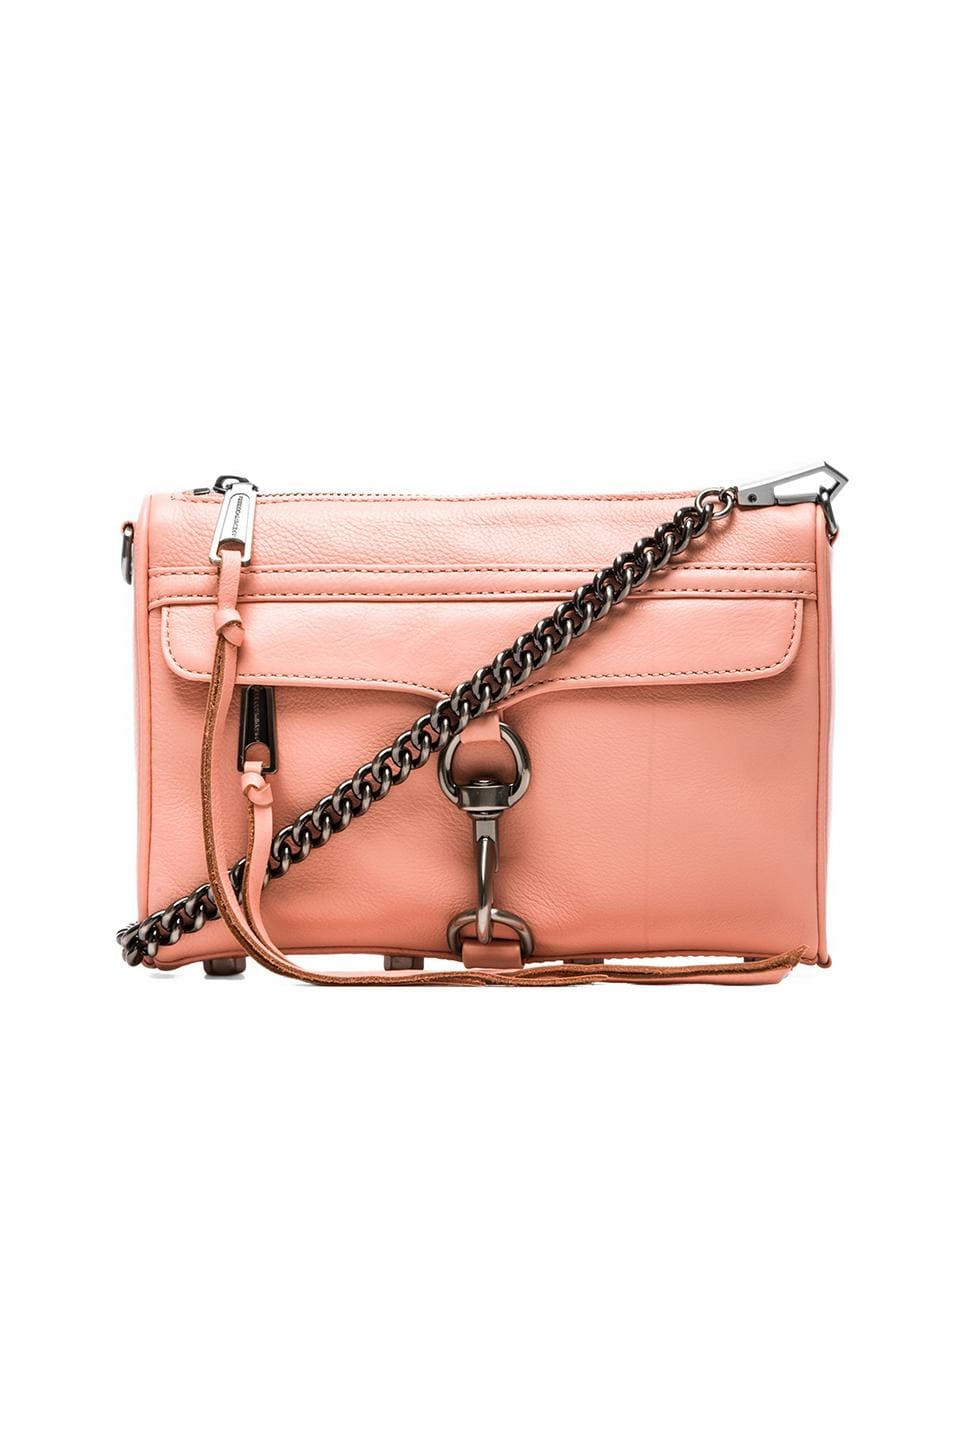 Rebecca Minkoff Mini MAC in Peach